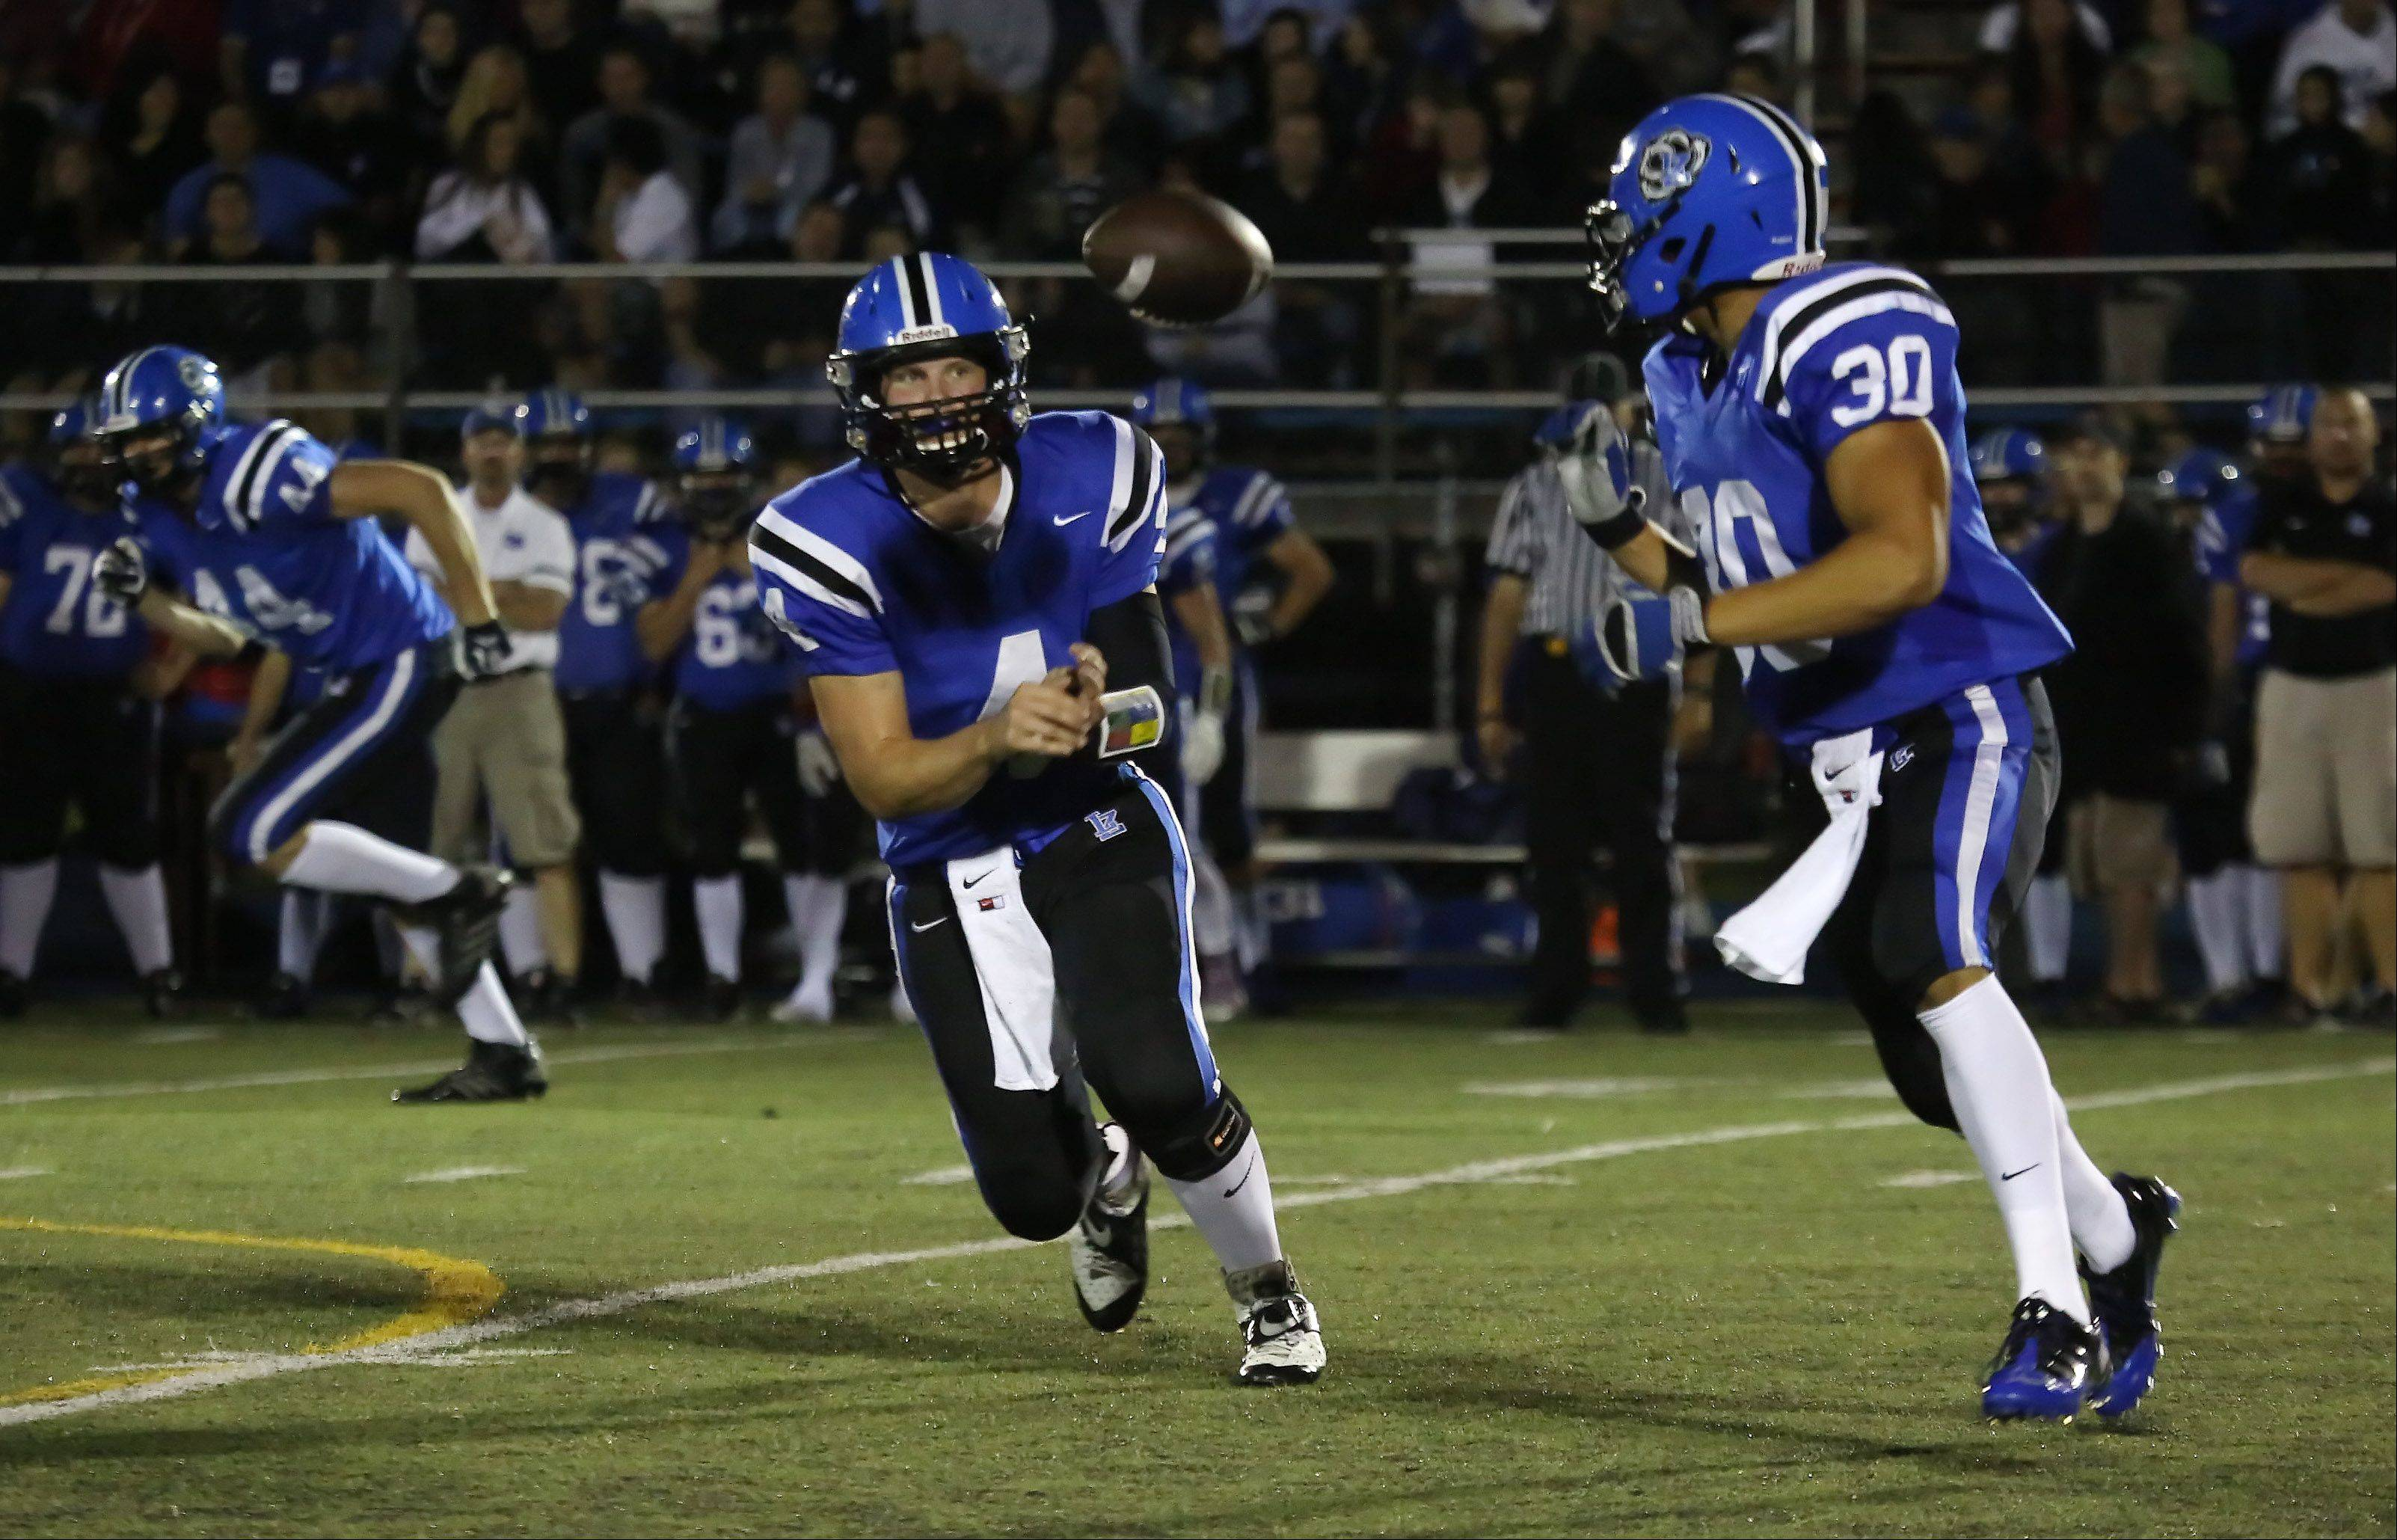 Images: Lake Zurich vs. Warren football